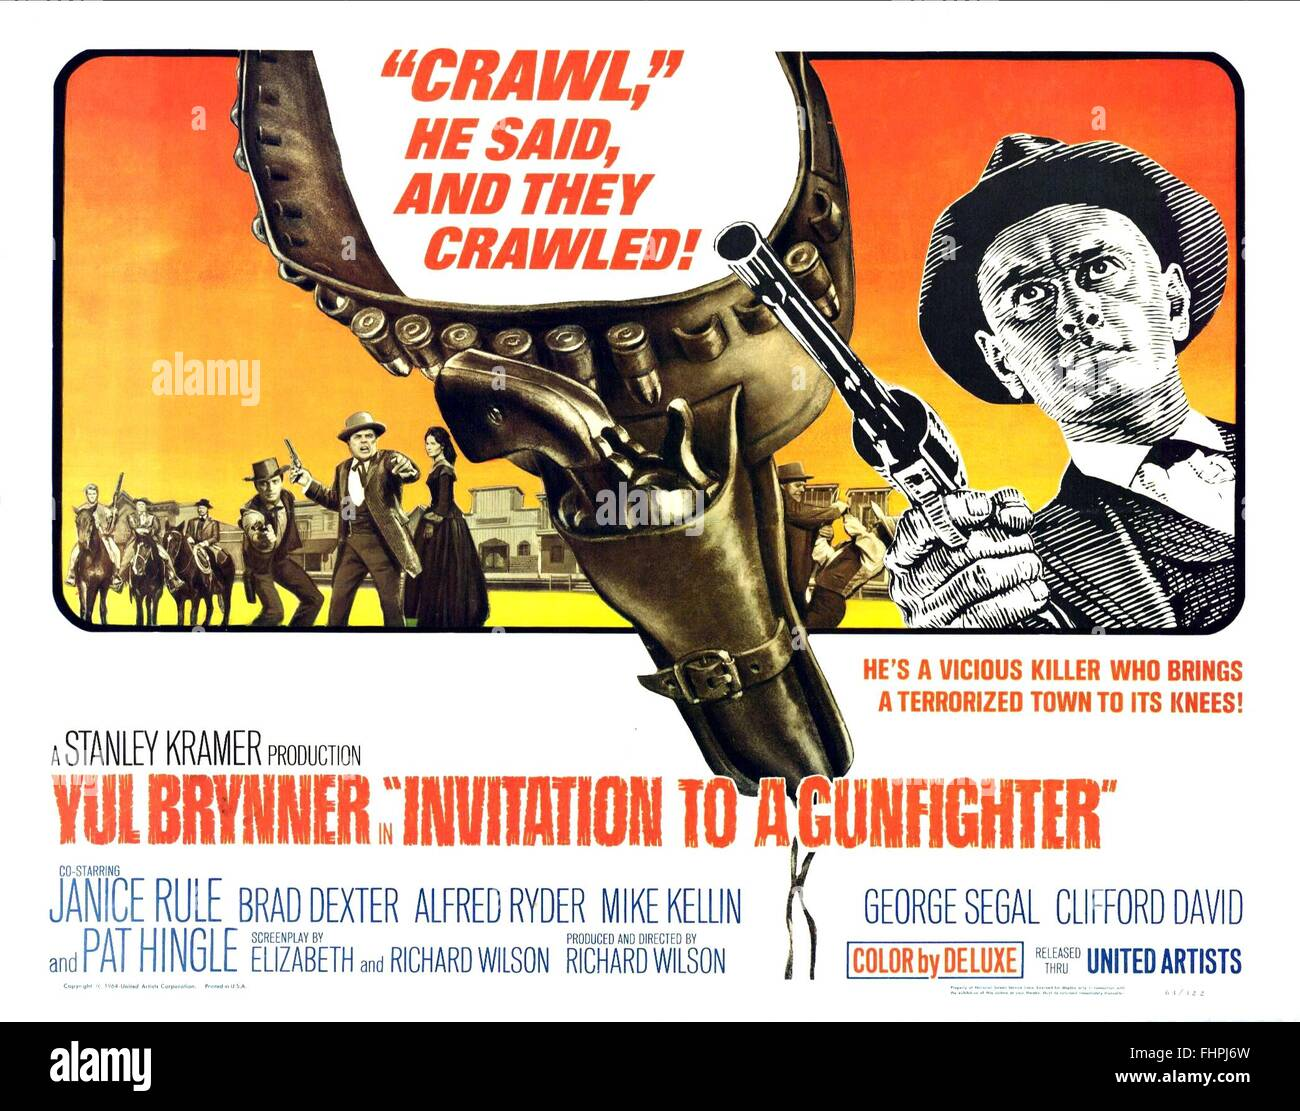 Movie poster invitation to a gunfighter 1964 stock photo 96998241 movie poster invitation to a gunfighter 1964 stopboris Gallery